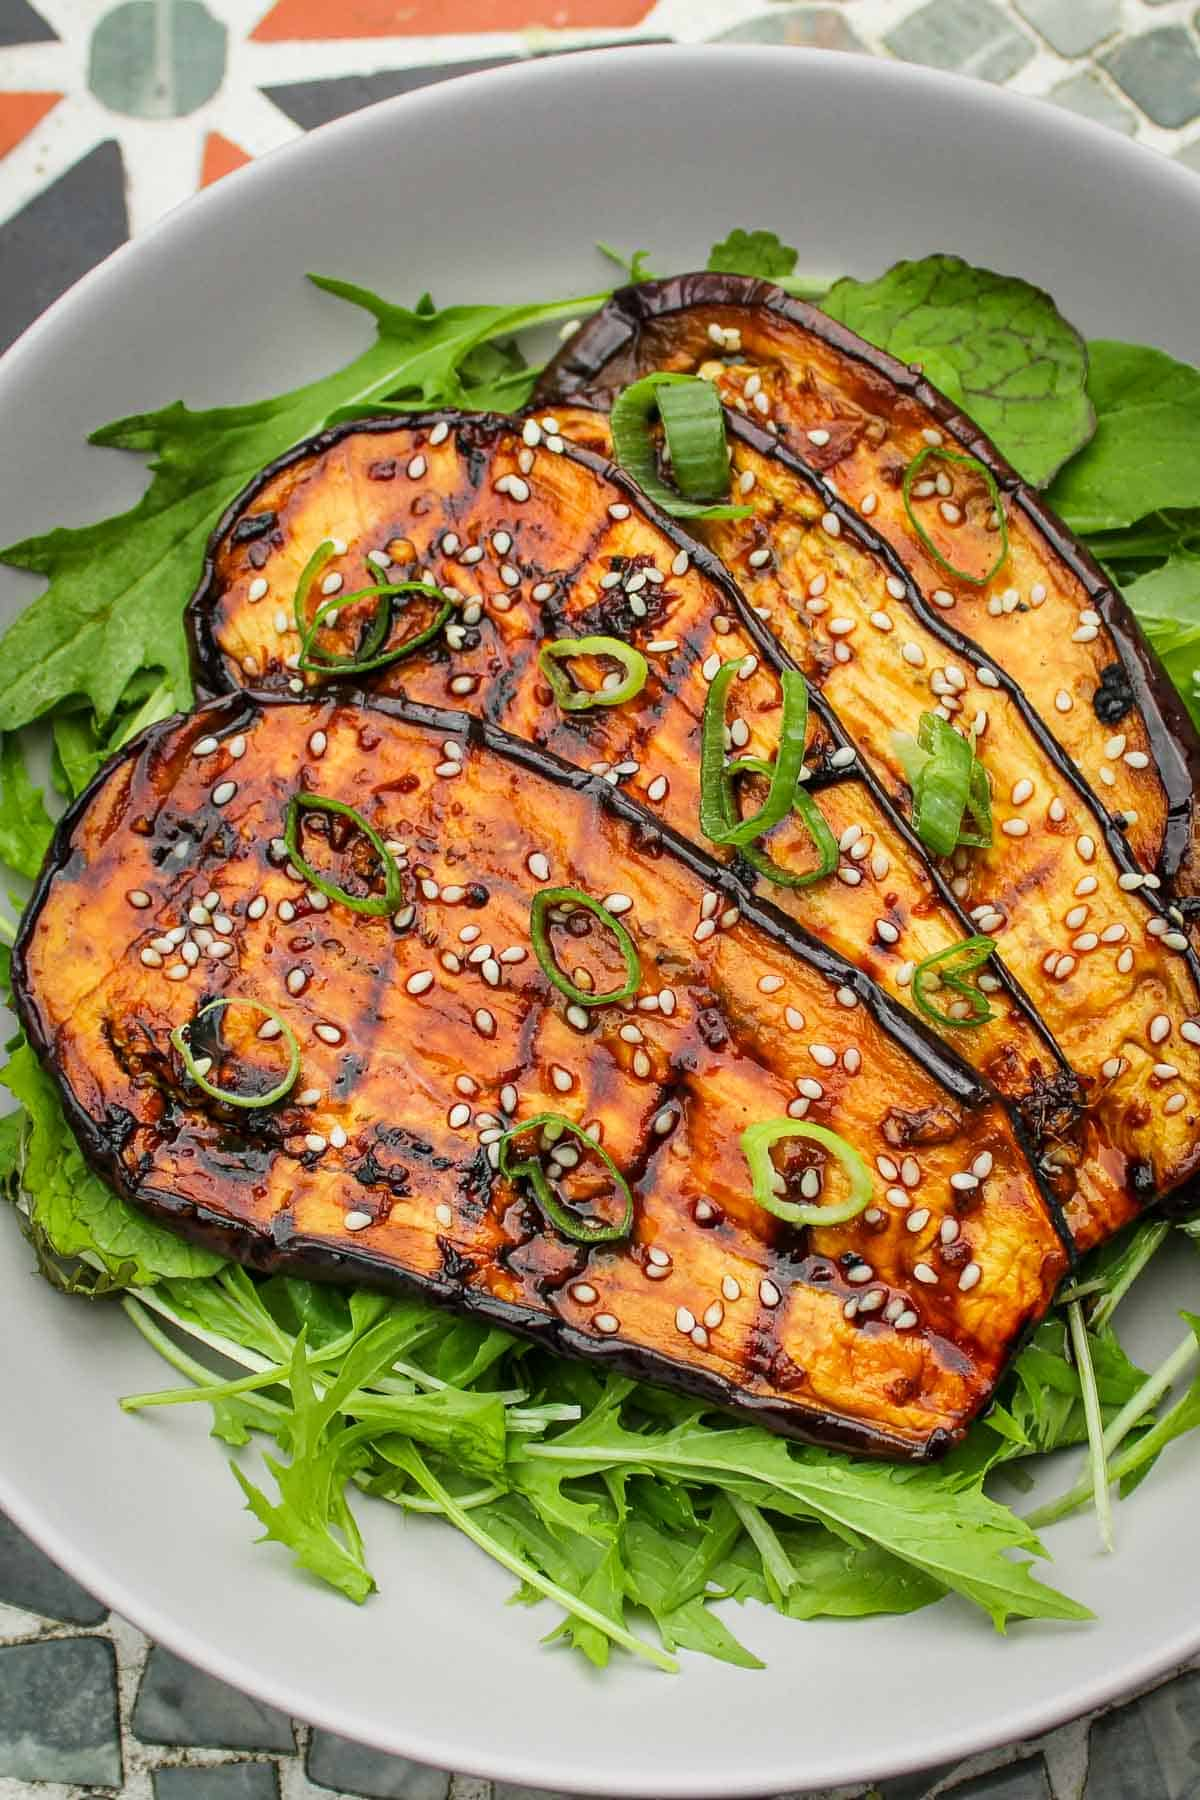 Grilled Eggplant with Salad and Spring Onions